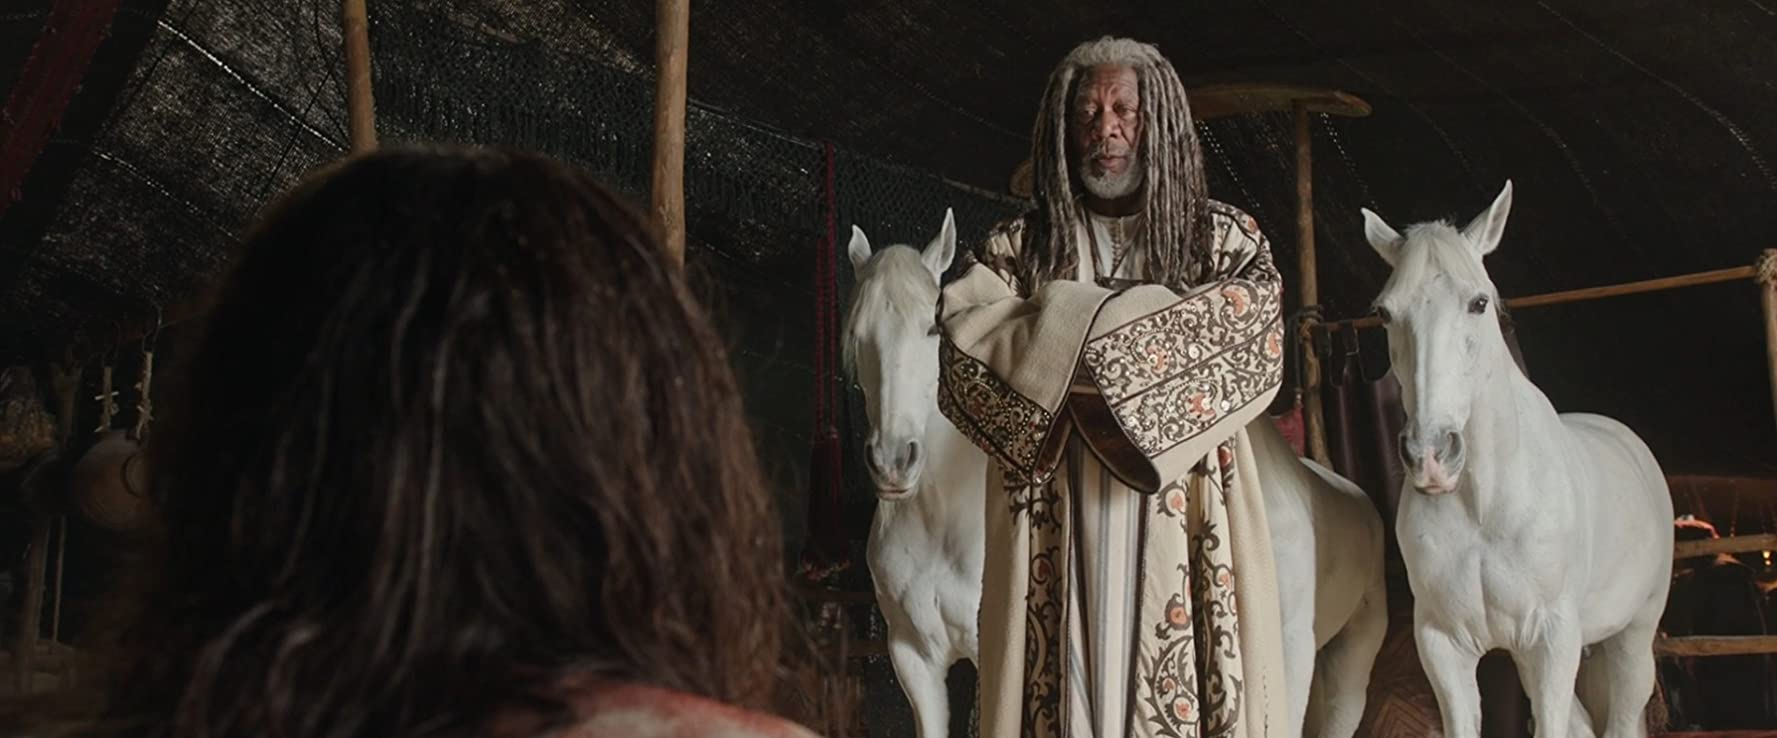 Morgan Freeman in Ben-Hur (2016)